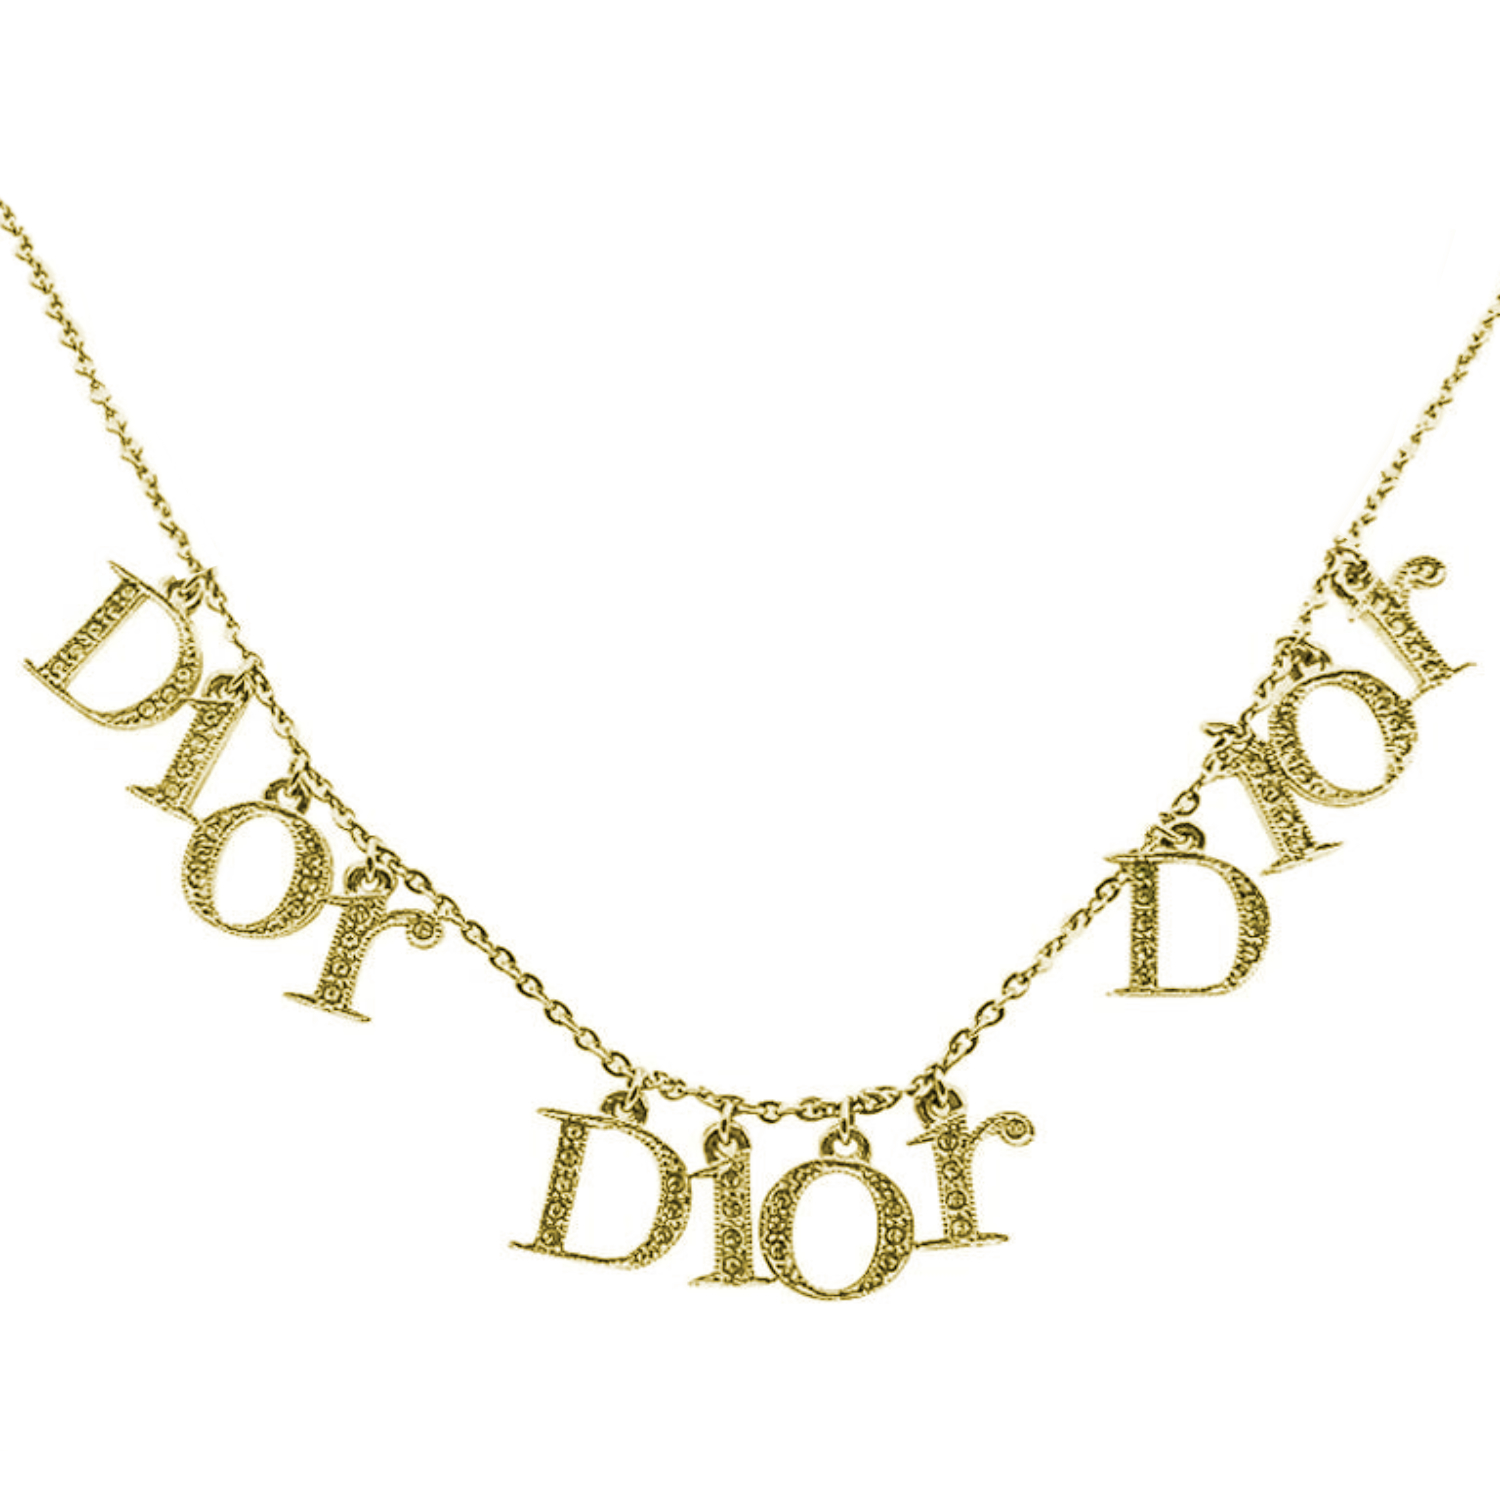 Vintage Dior Diamante Spellout Necklace in Gold | NITRYL